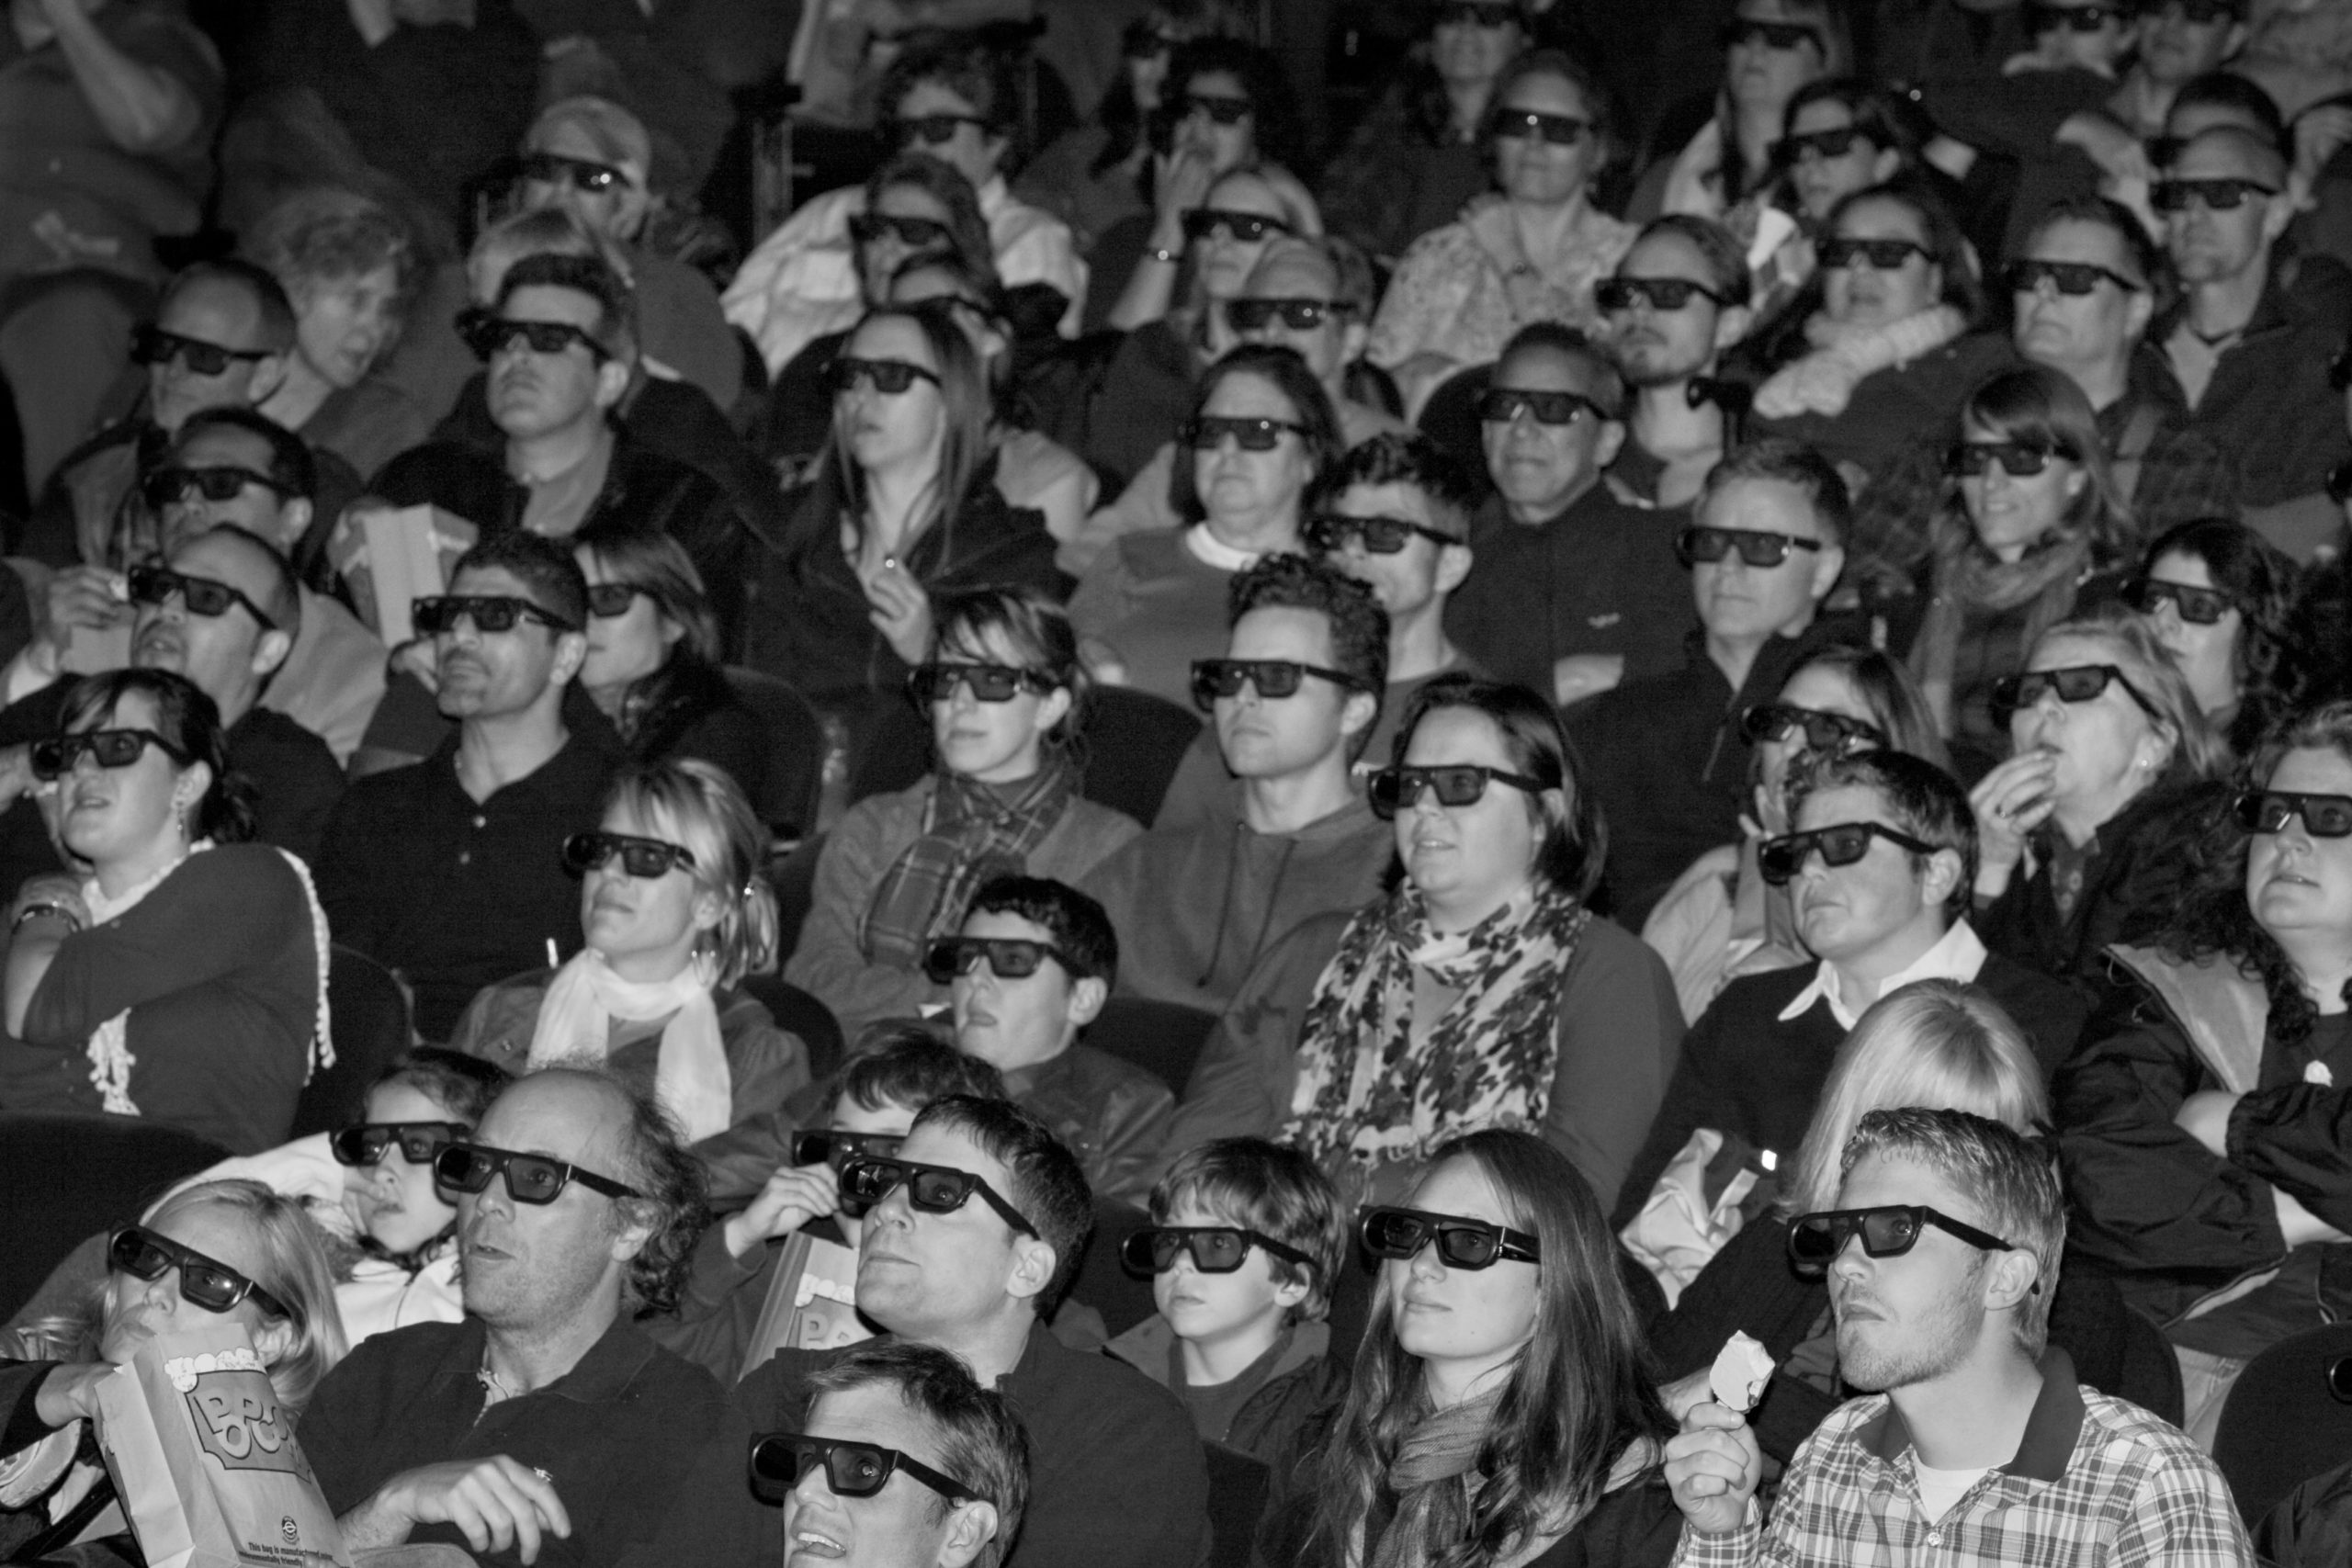 Castro Theatre audience watching Alice In Wonderland in 3D, March 12, 2010